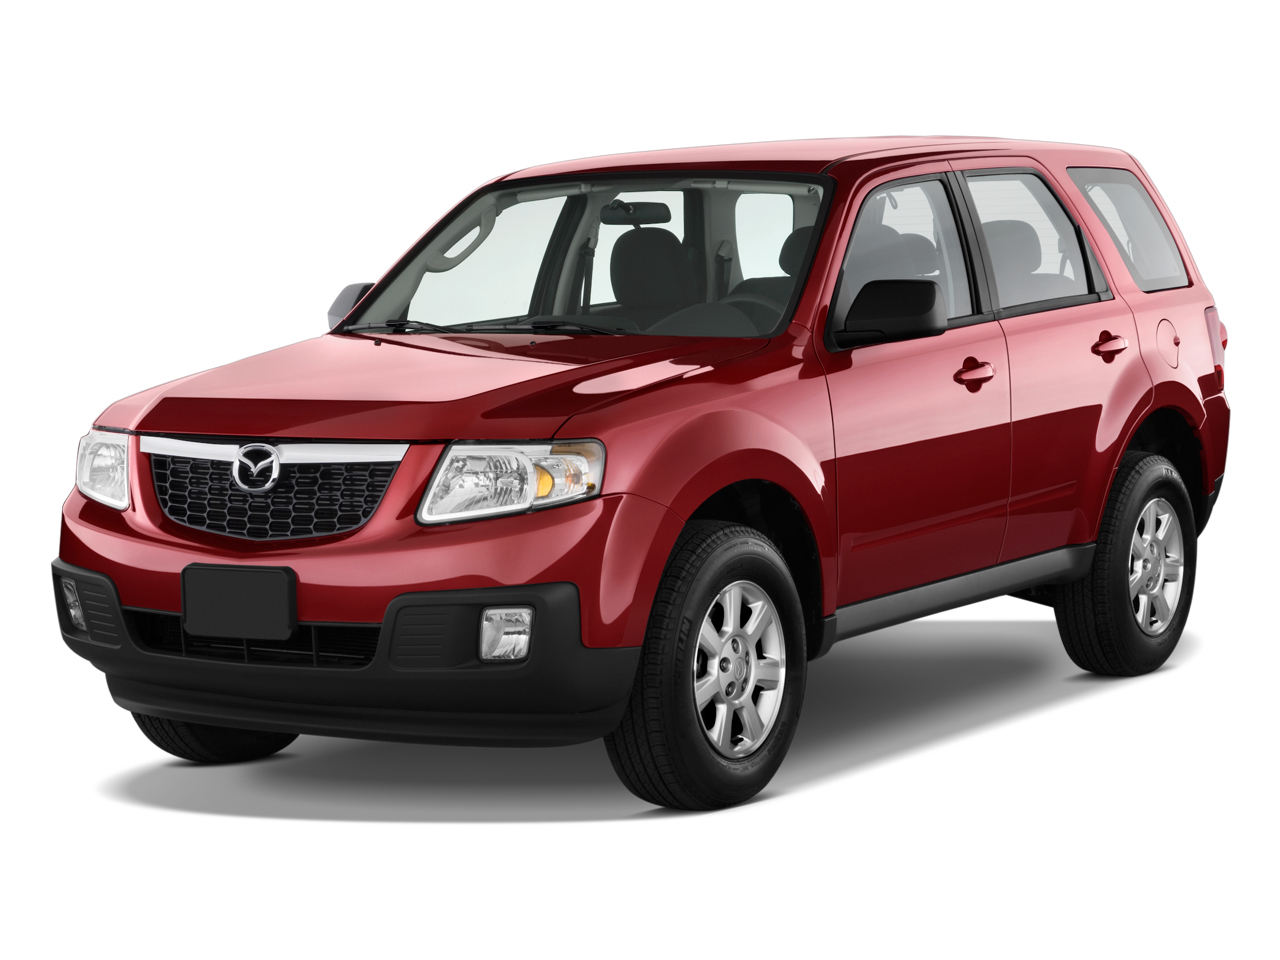 2011 Mazda Tribute Review Ratings Specs Prices And